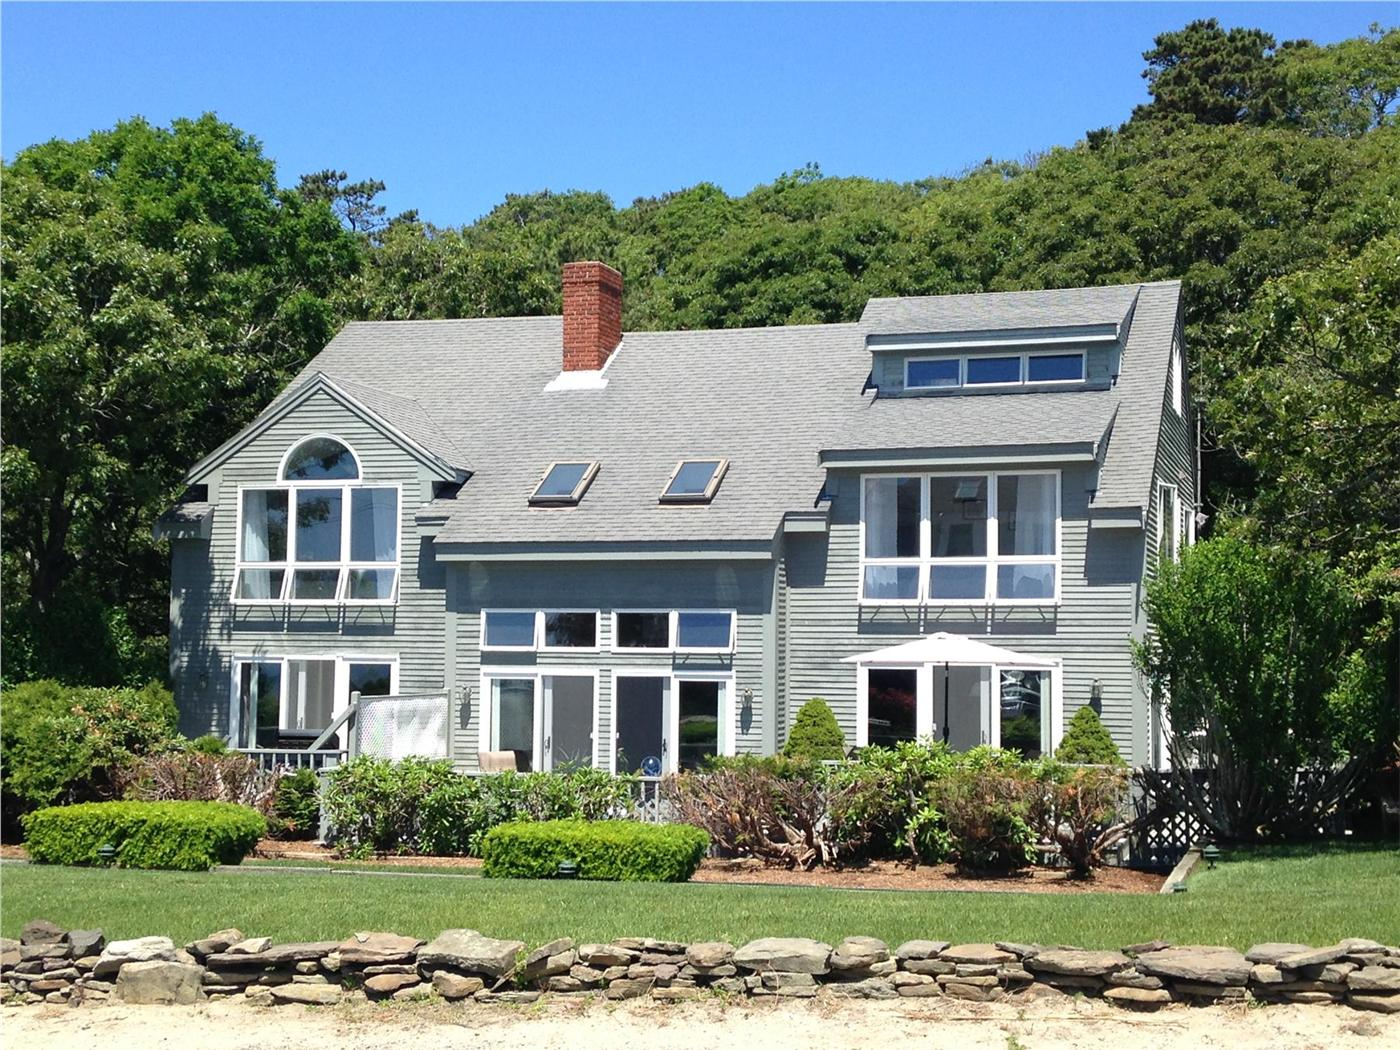 number street bradford cottages listing provincetown in extensionprovincetown mls ma